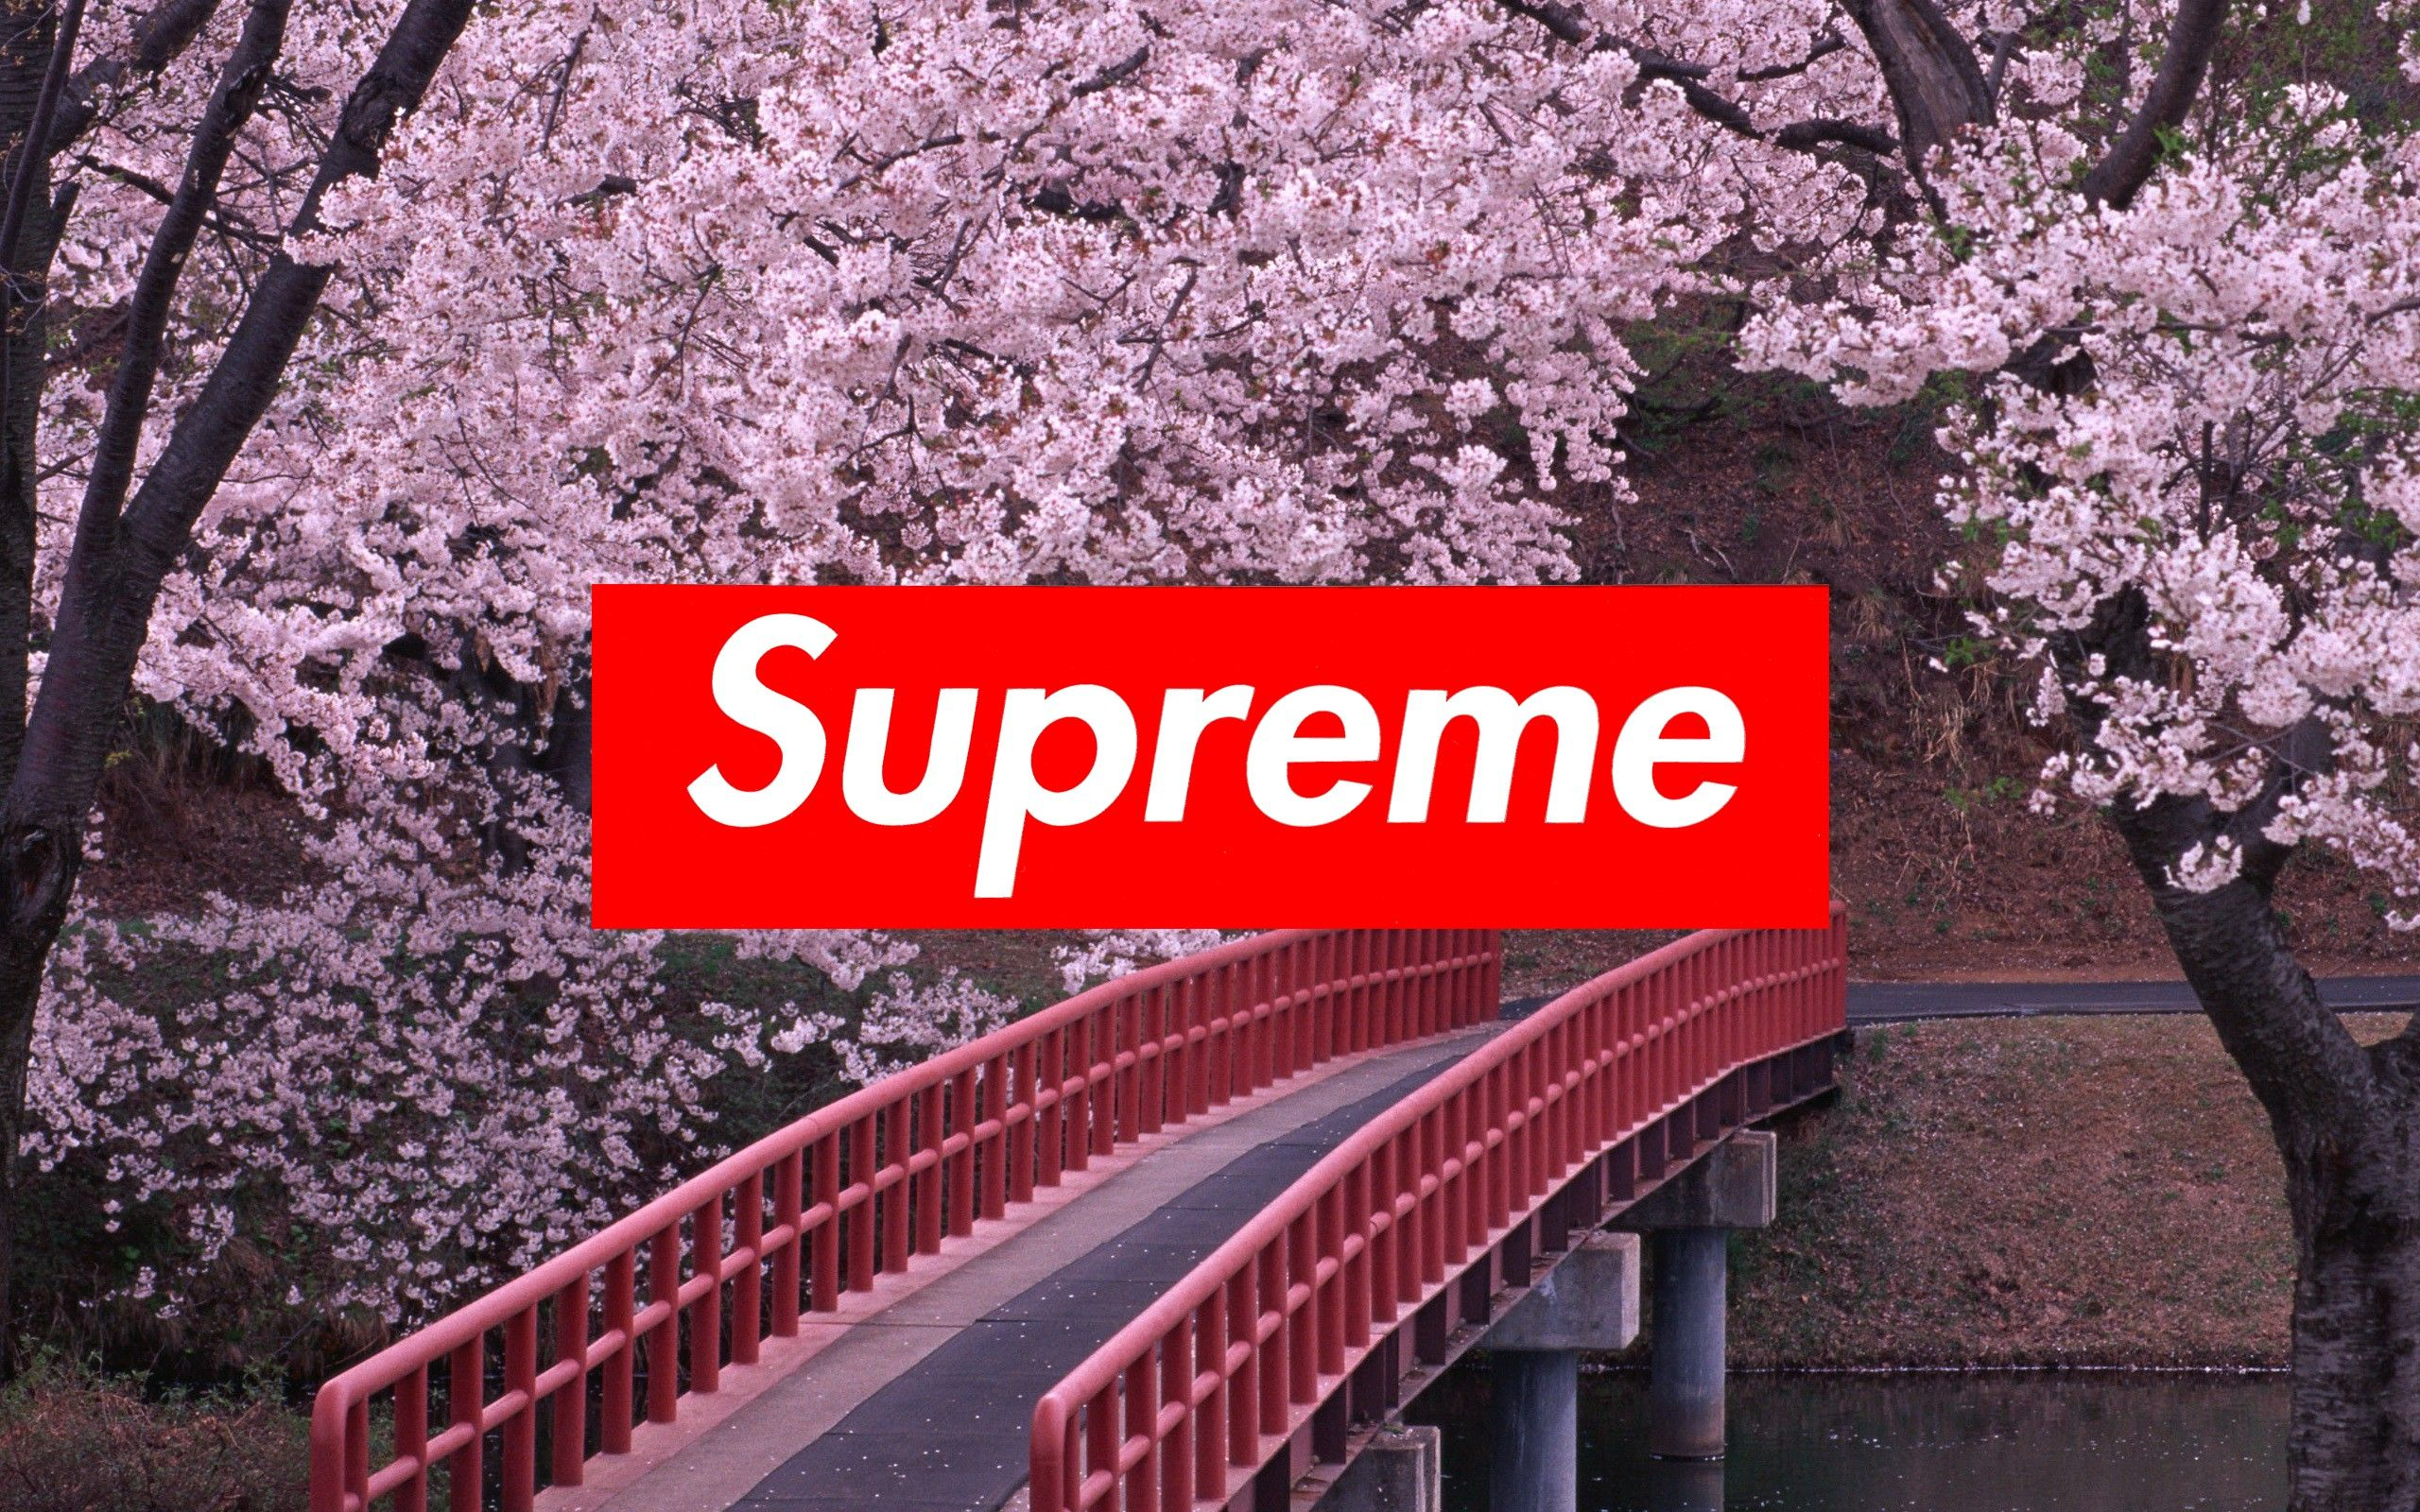 Supreme Laptop Wallpapers   Top Supreme Laptop Backgrounds 2560x1600